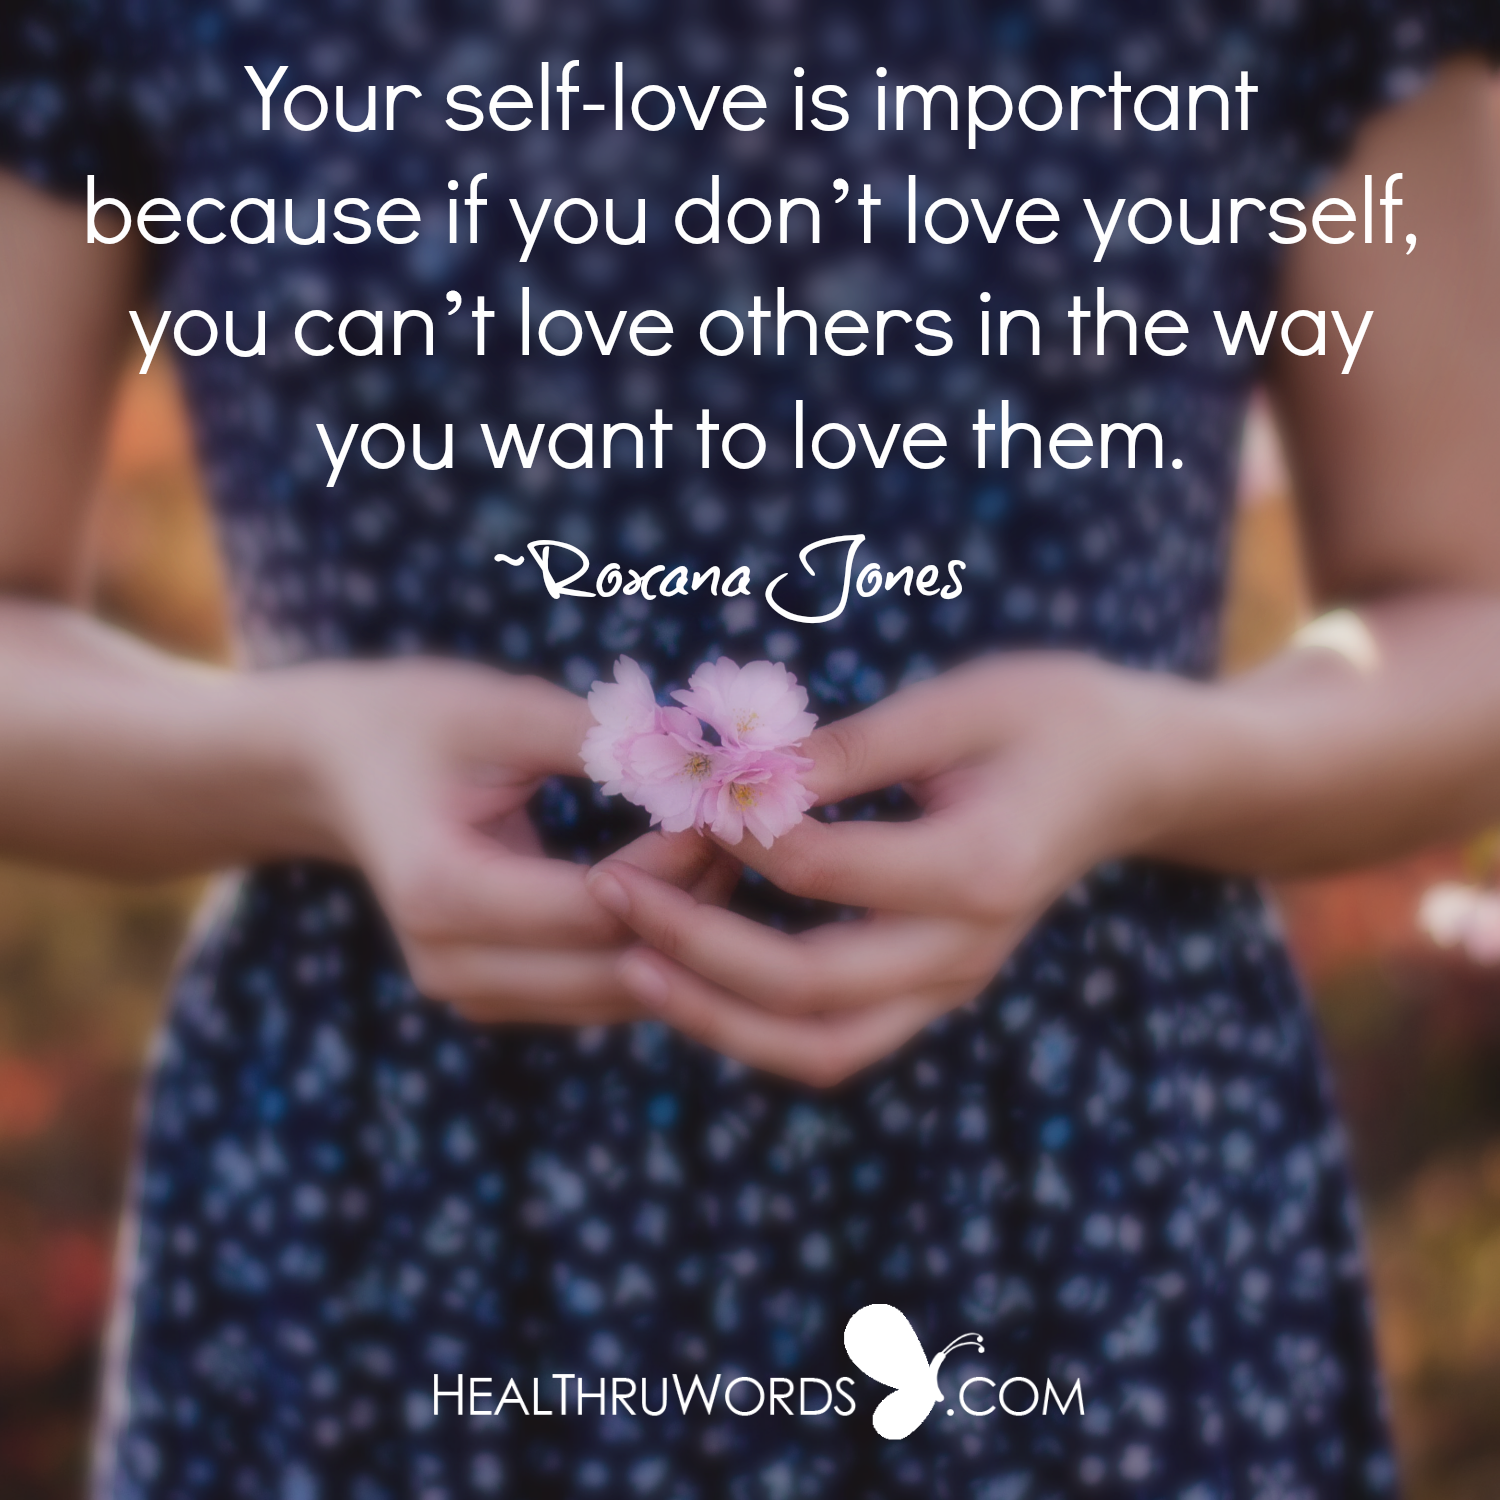 Inspirational Image: Self-love and Relationships